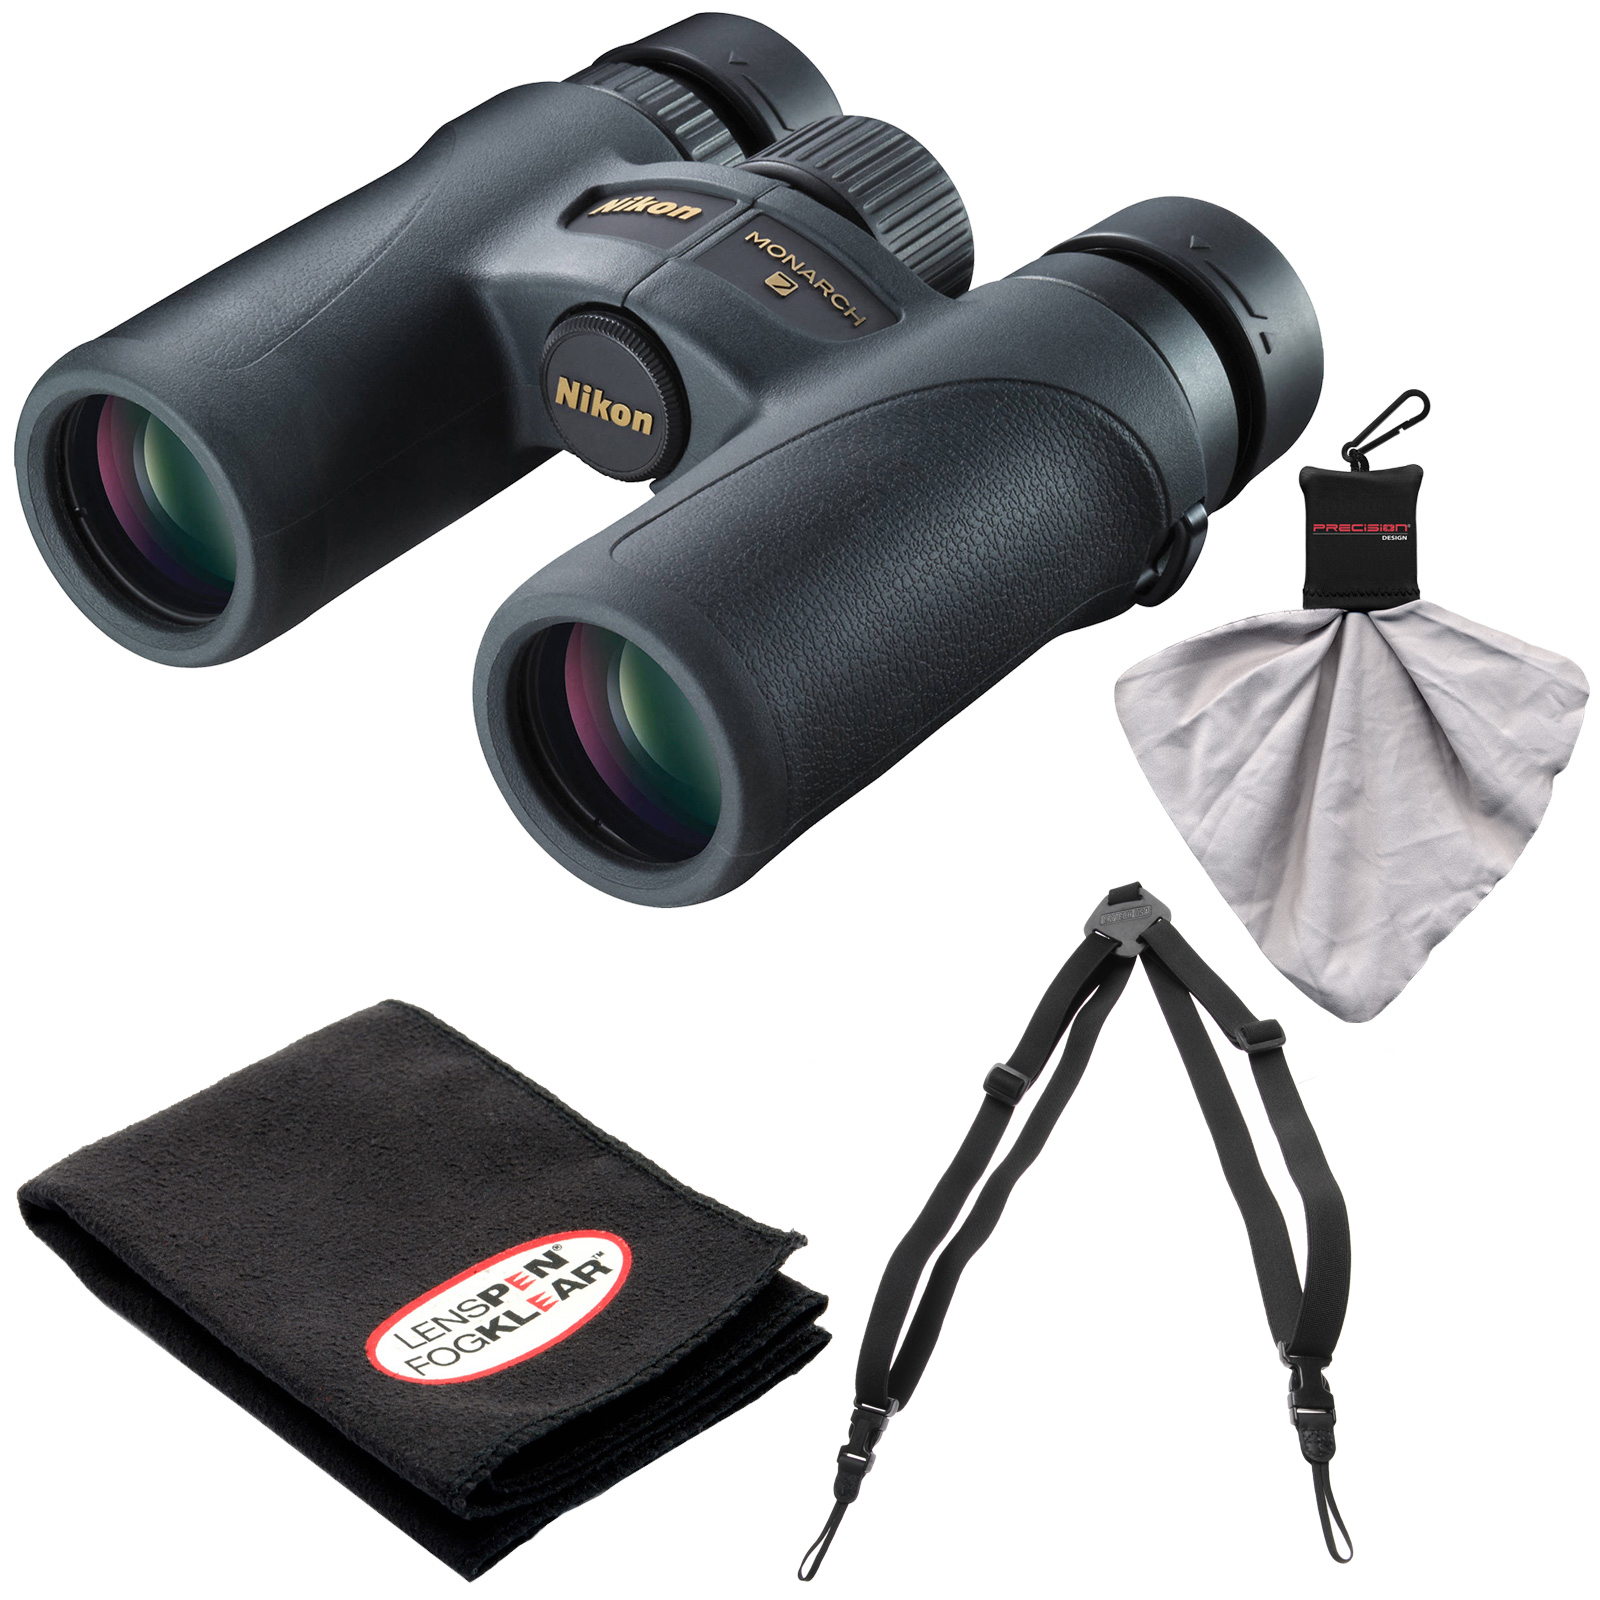 Nikon Monarch 7 10x30 ED ATB Waterproof/Fogproof Binoculars with Case   Easy Carry Harness   Cleaning Cloth Kit